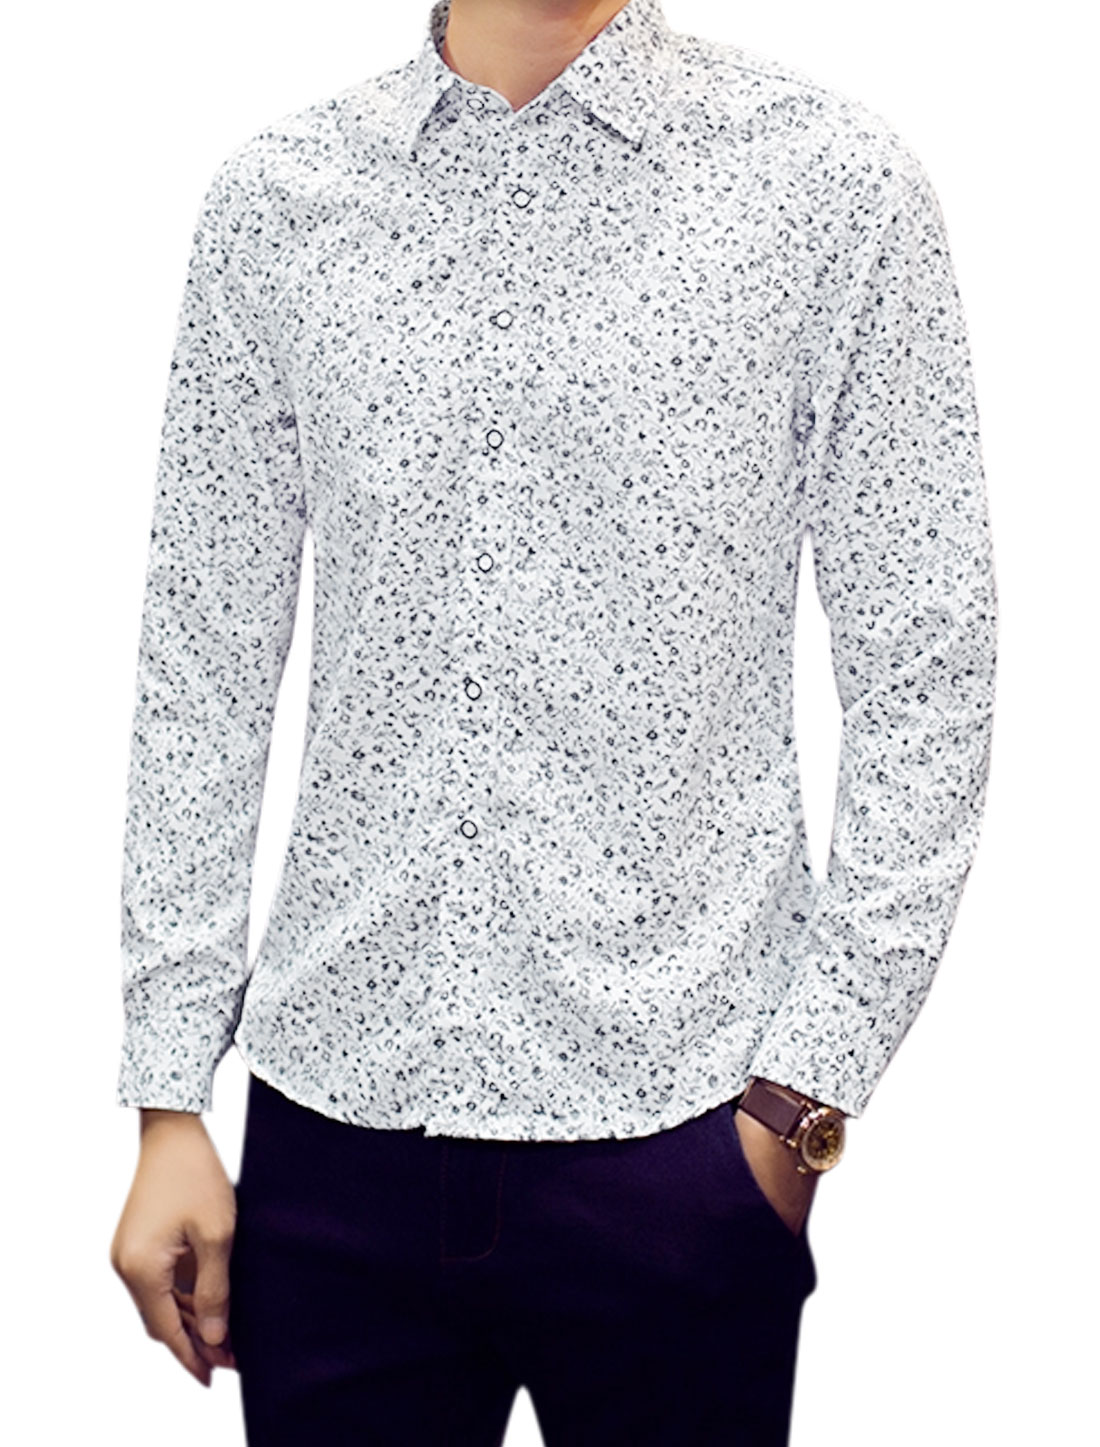 Men Point Collar Button Closed Floral Pattern Shirts White M